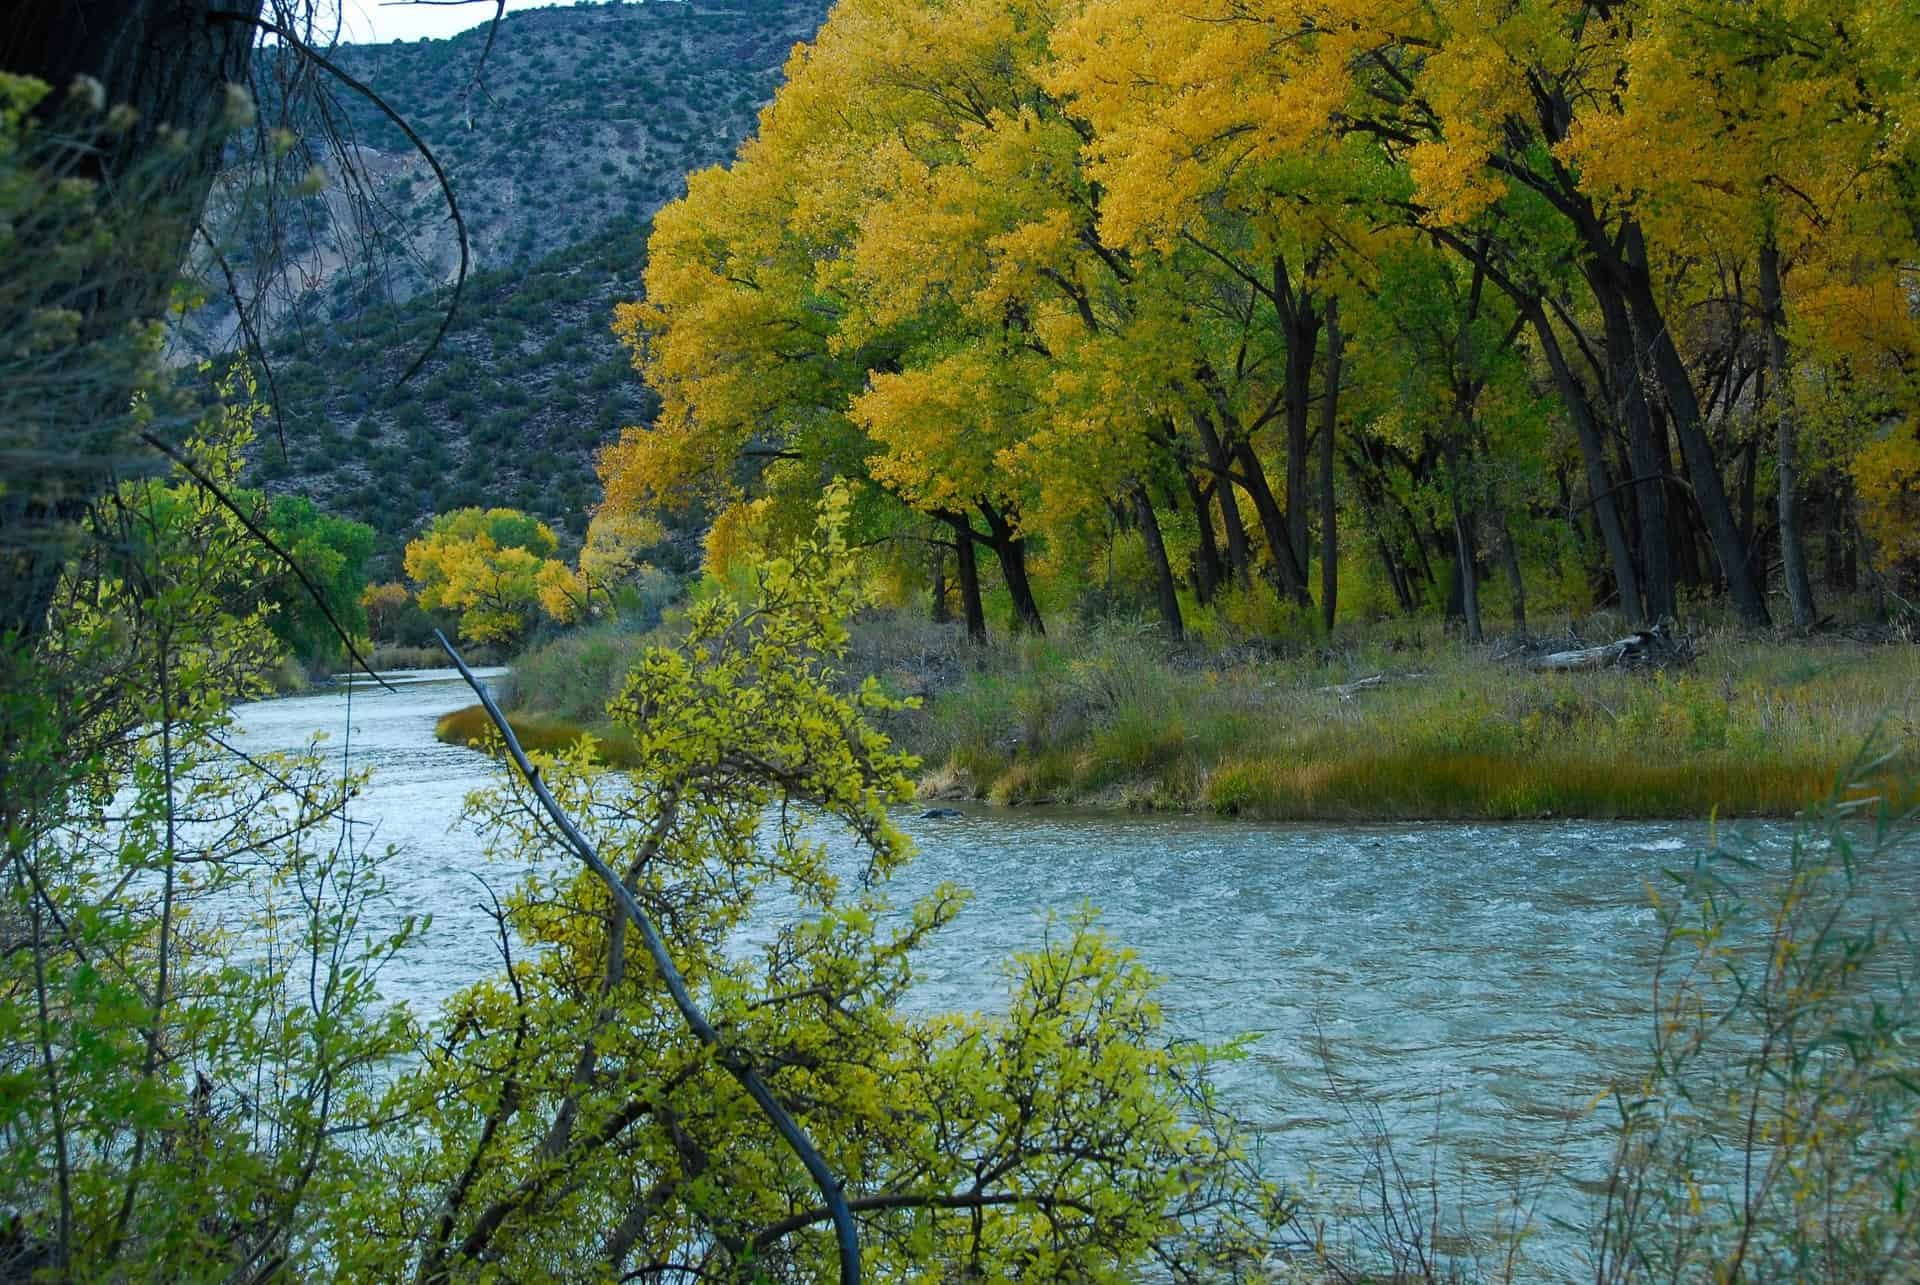 Cottonwoods in autumn along the Rio Grande